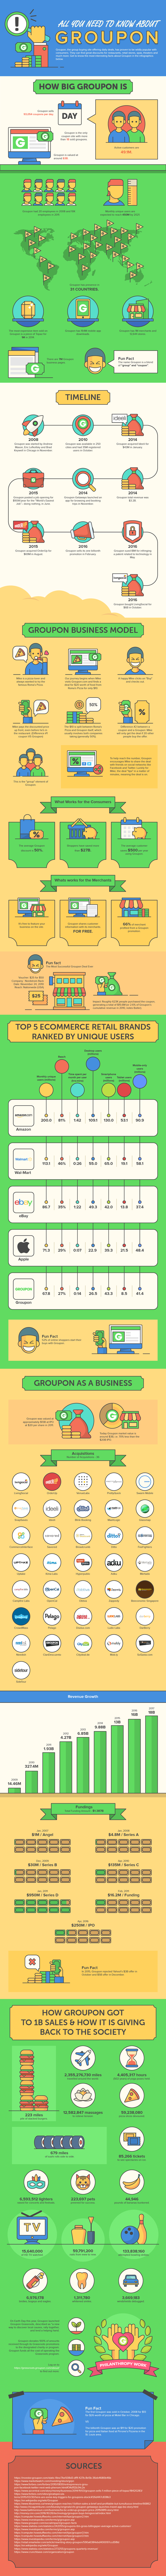 Infographic - Groupon